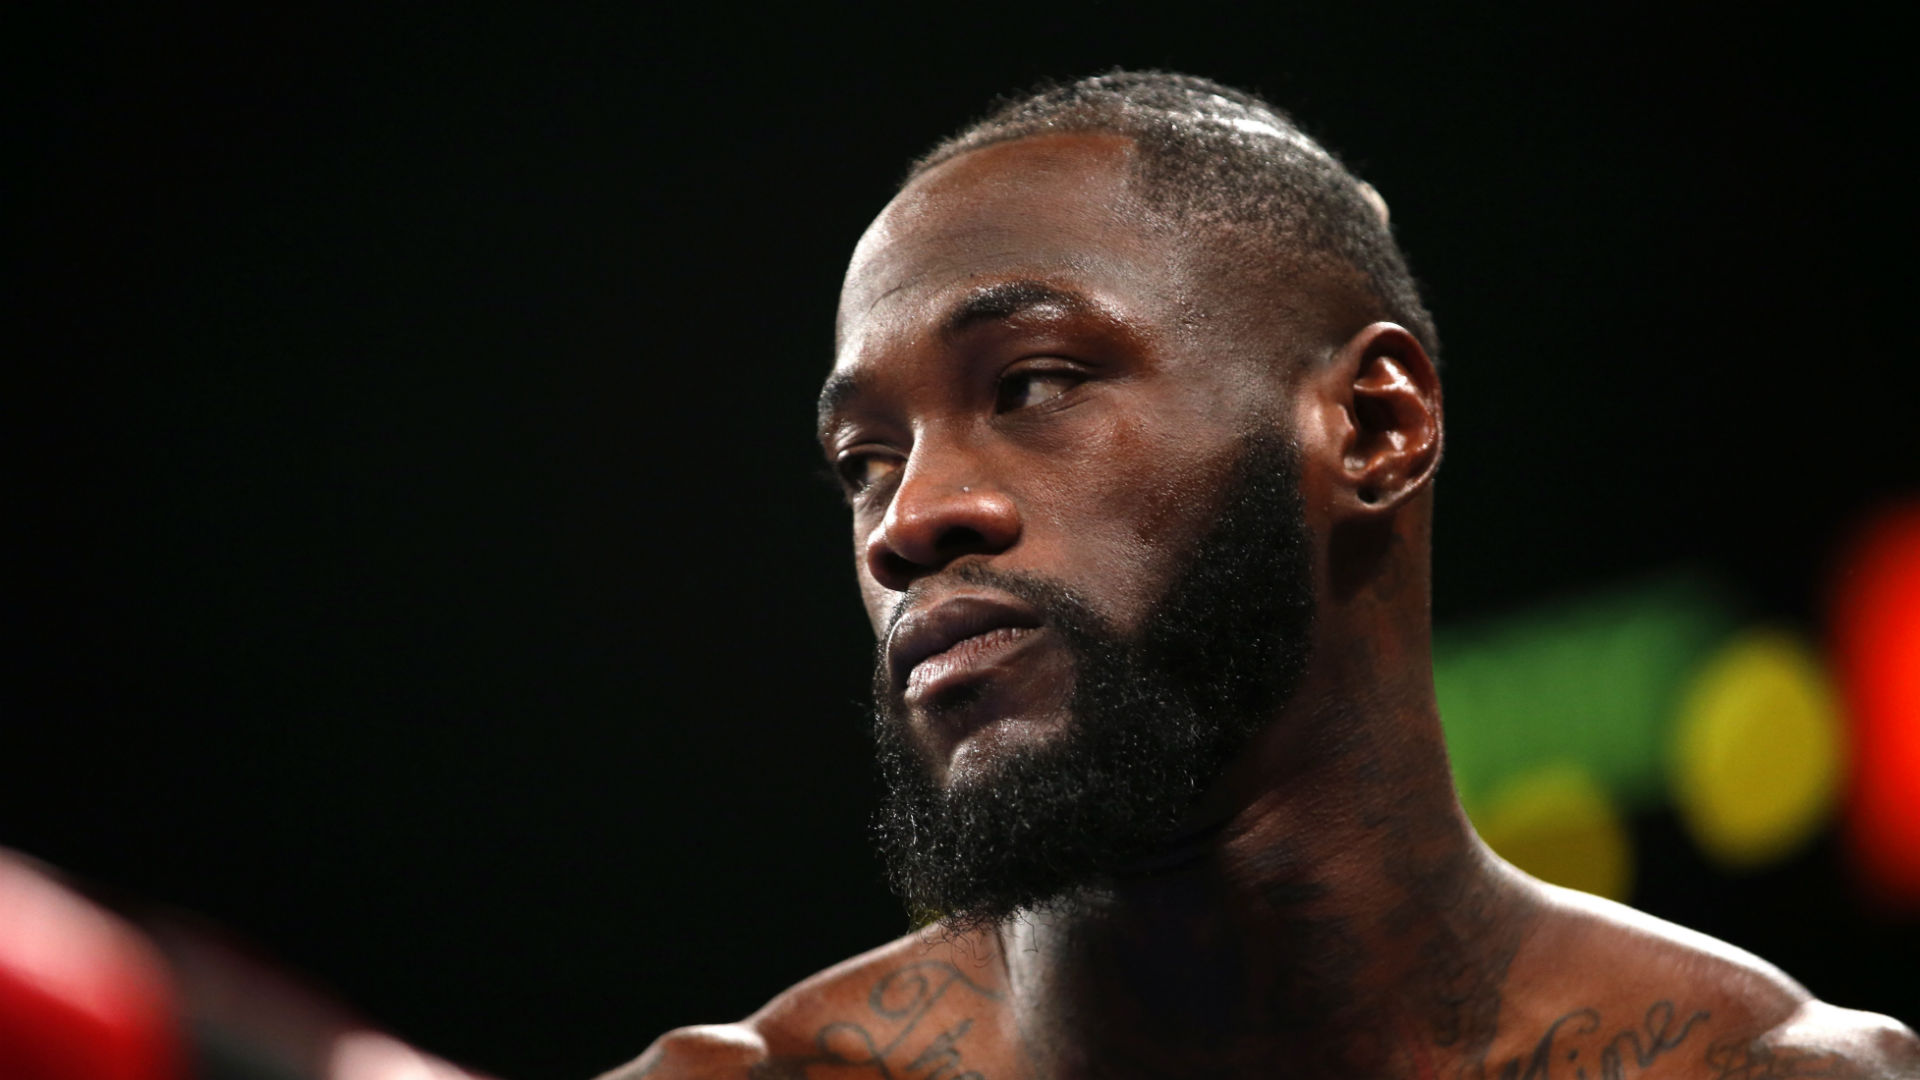 Fans come to see knockouts! Wilder blasts 'hesitant' Joshua